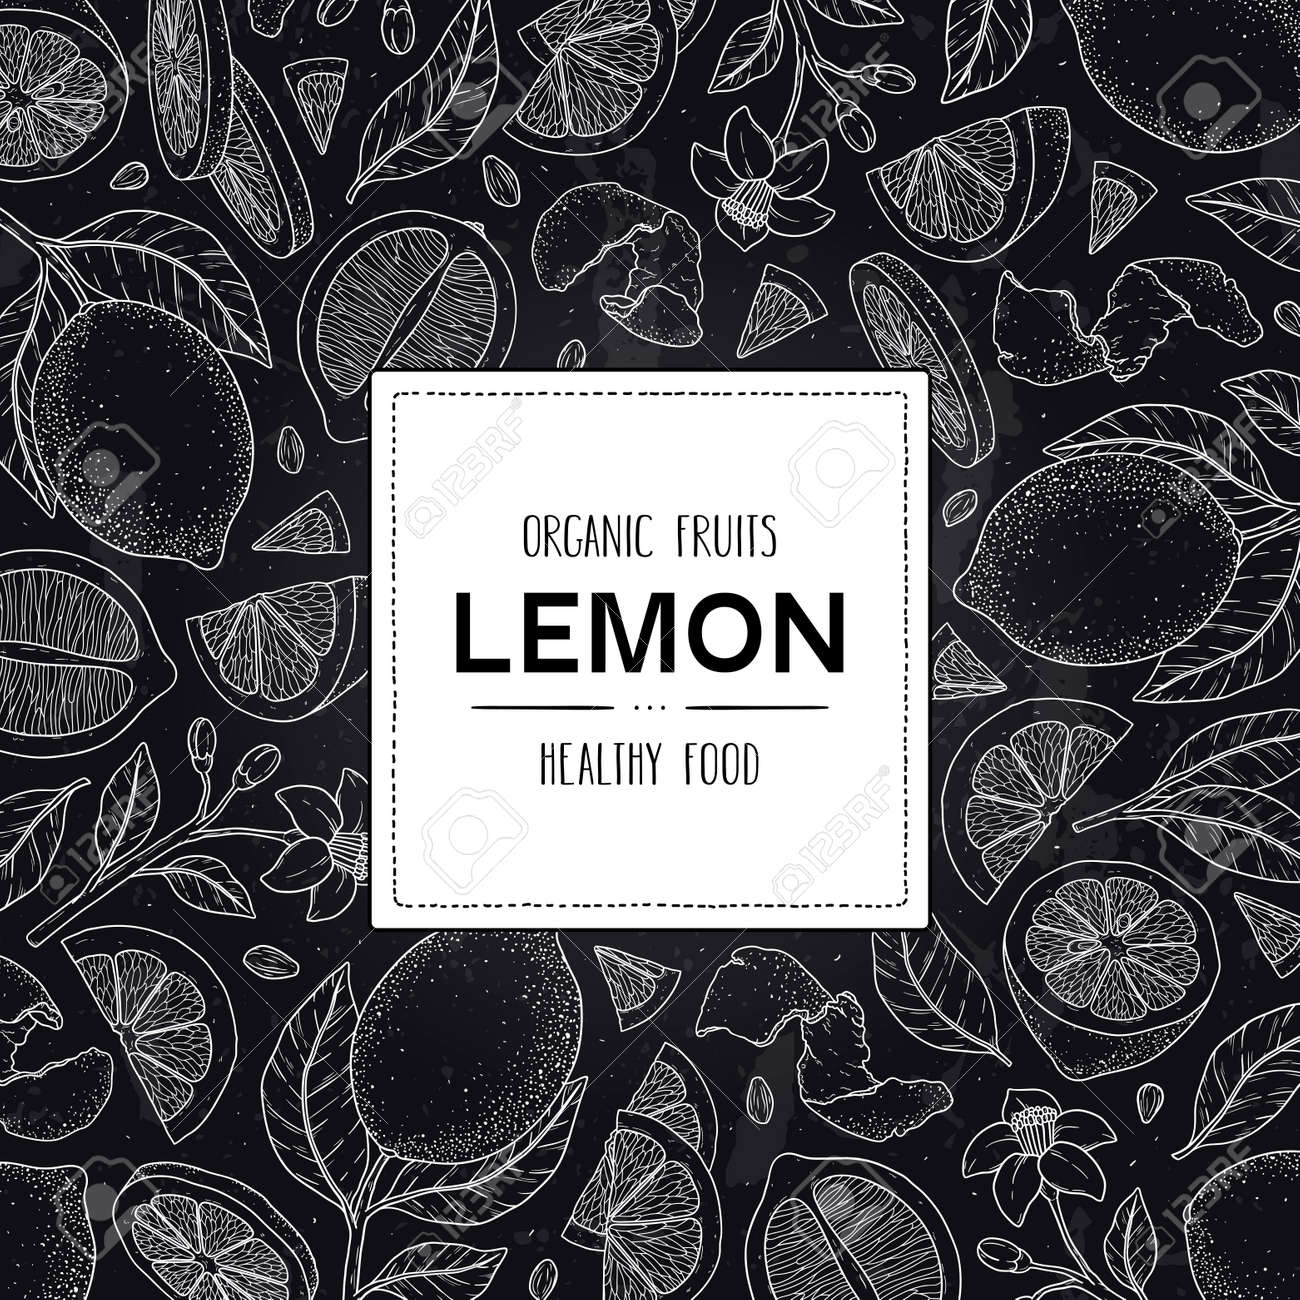 Vector chalkboard style frame with organic whole lemon, slices pieces, half, seed, flower, leaves and label. Citrus hand drawn doodle sketch illustration. - 168597338